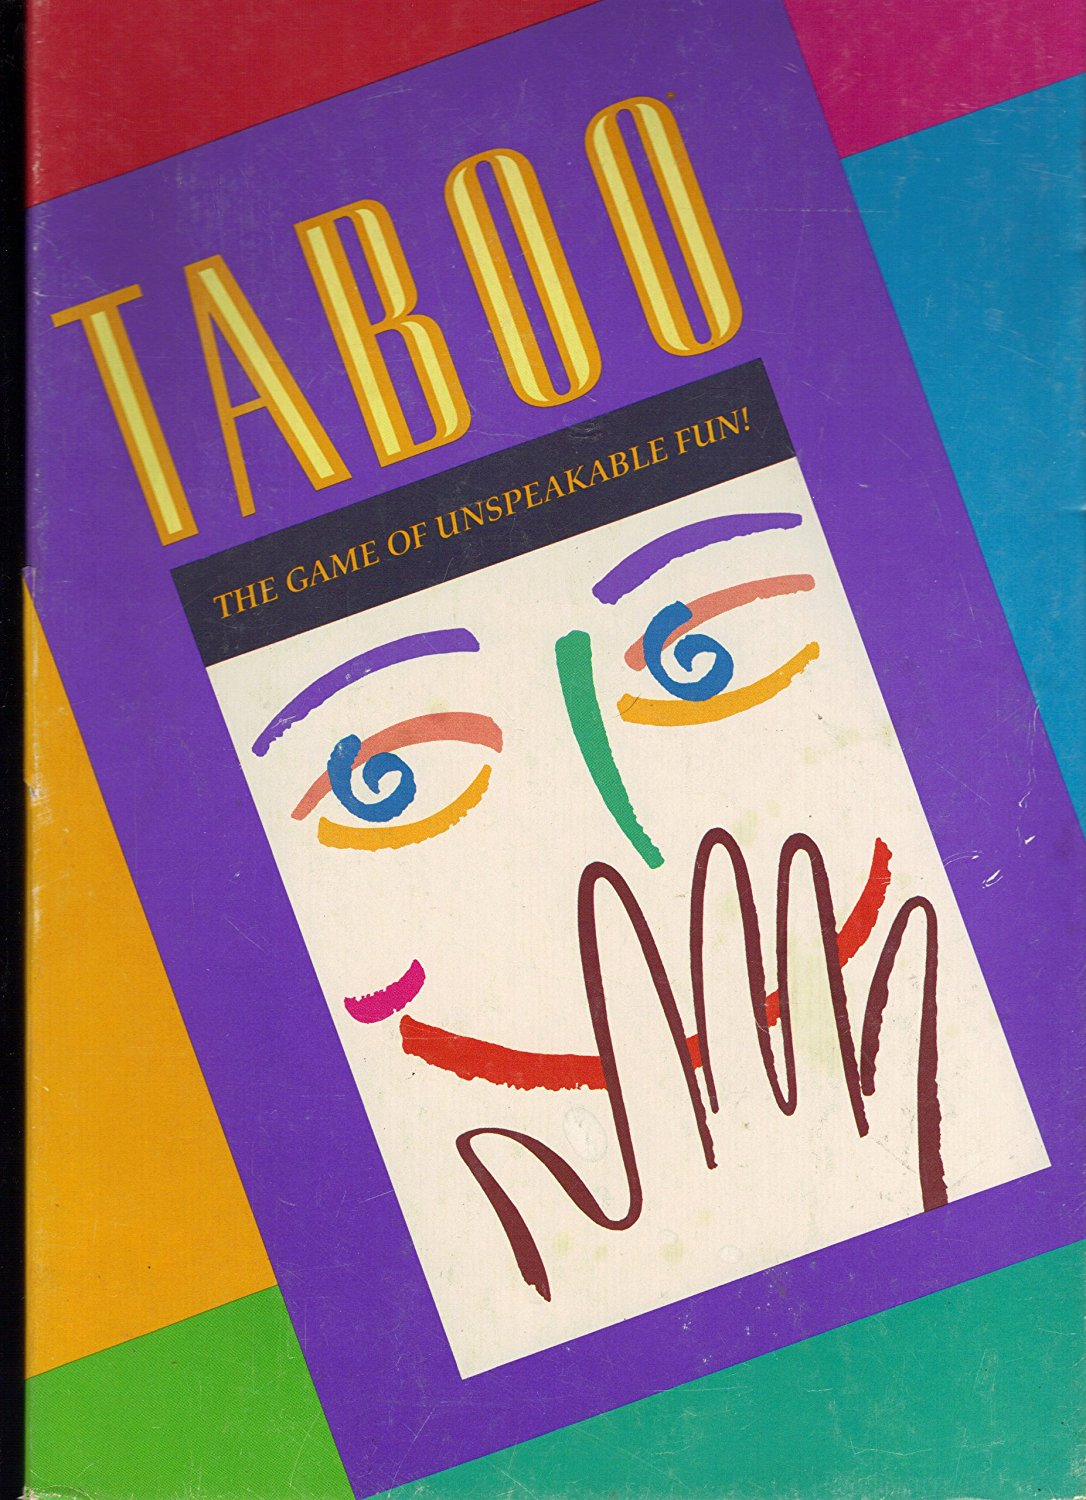 1989 Taboo the Game of Unspeakable Fun, How do you get your team to say... Diamond ? If you can't... by